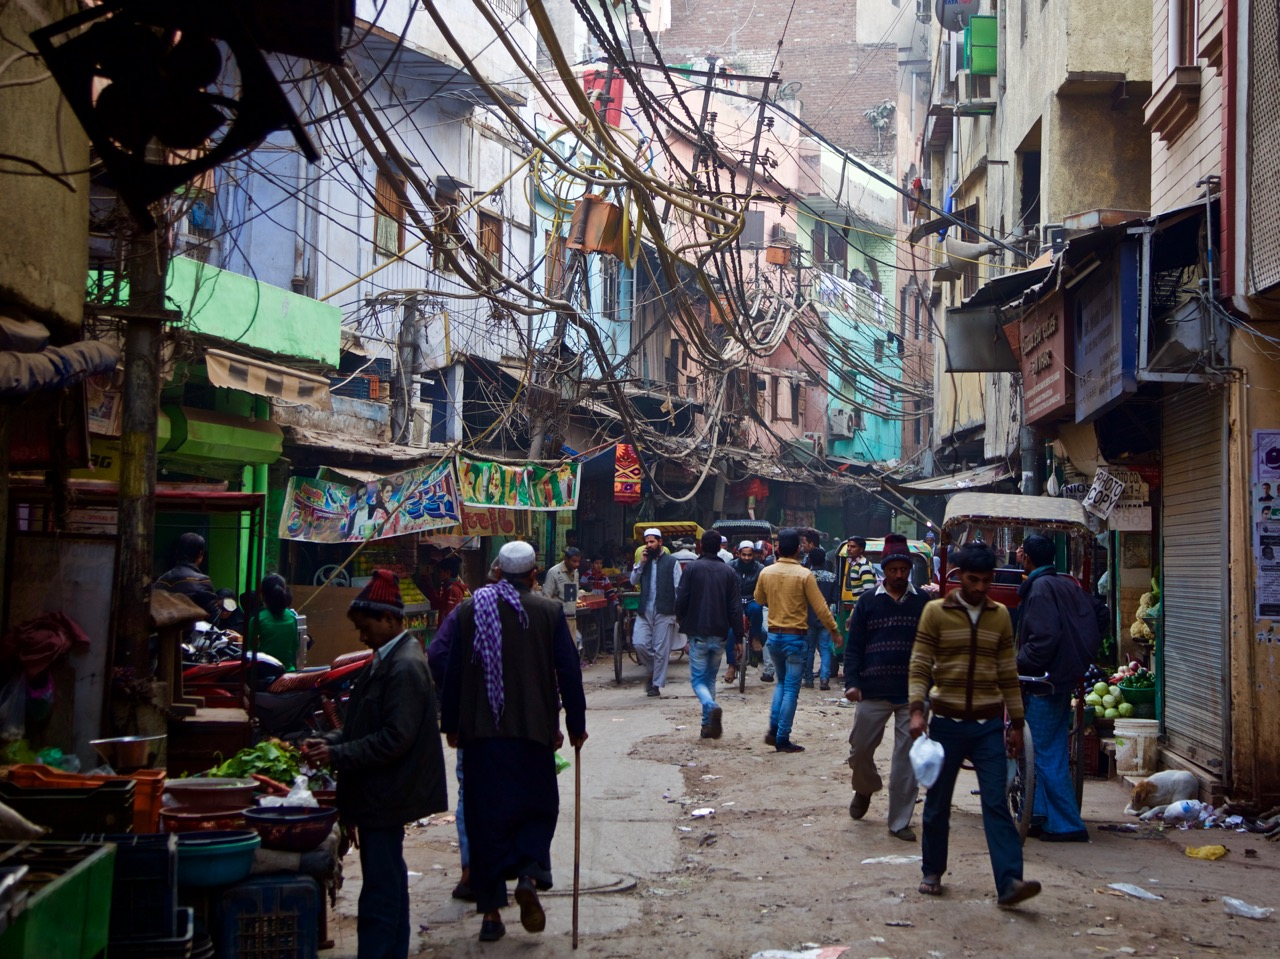 India - Old Delhi street